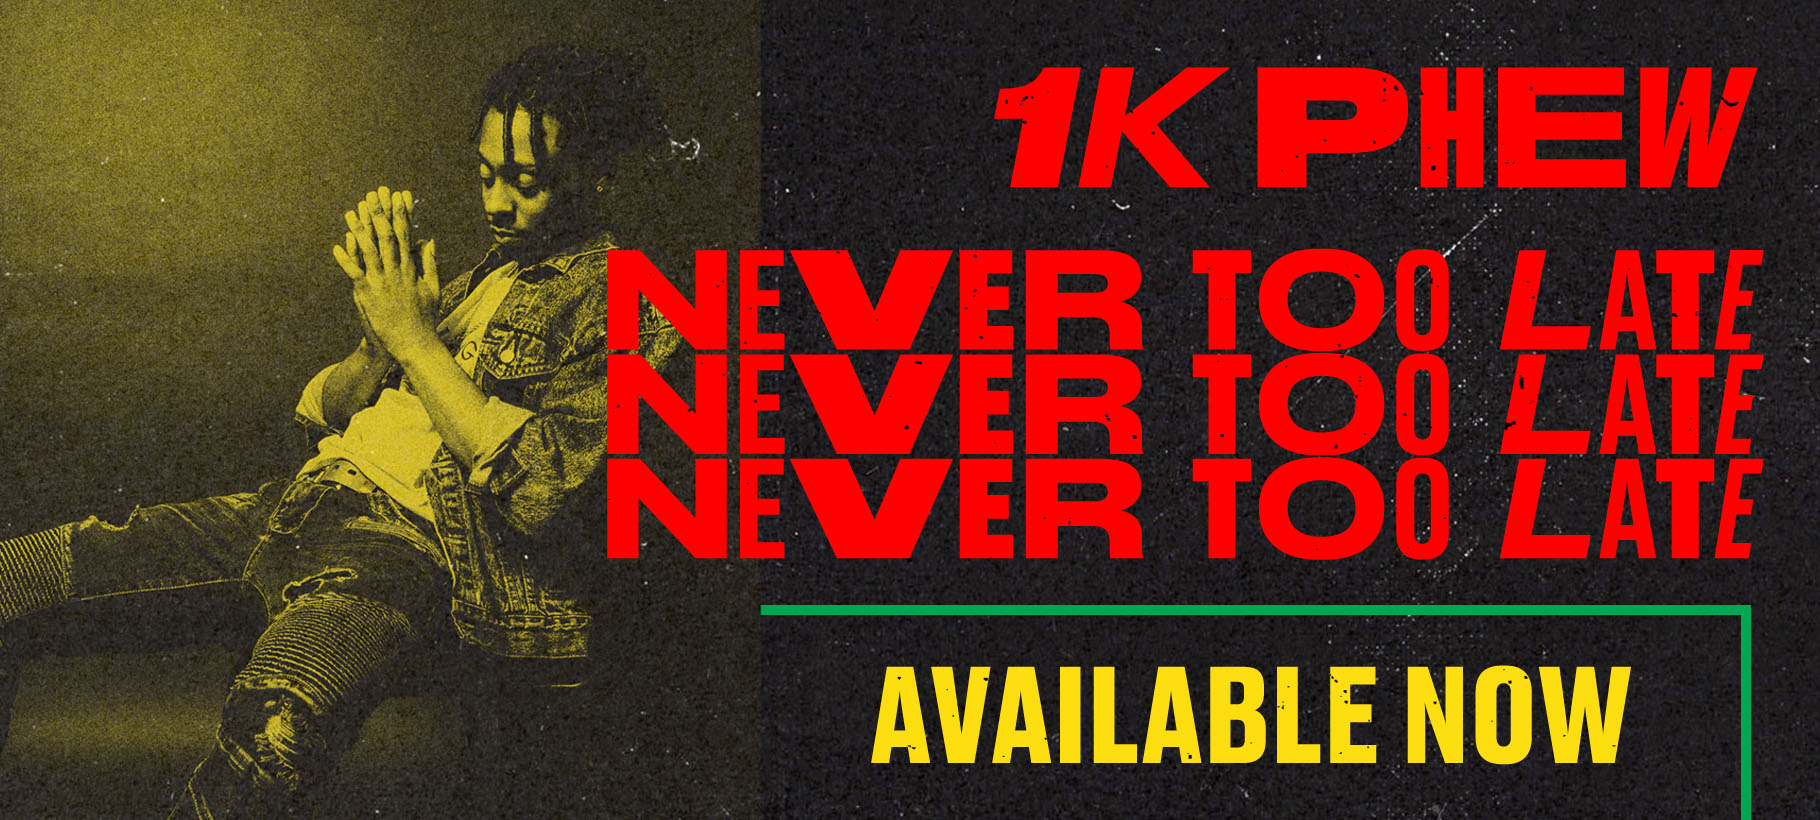 1K Phew x Never Too Late x Out Now